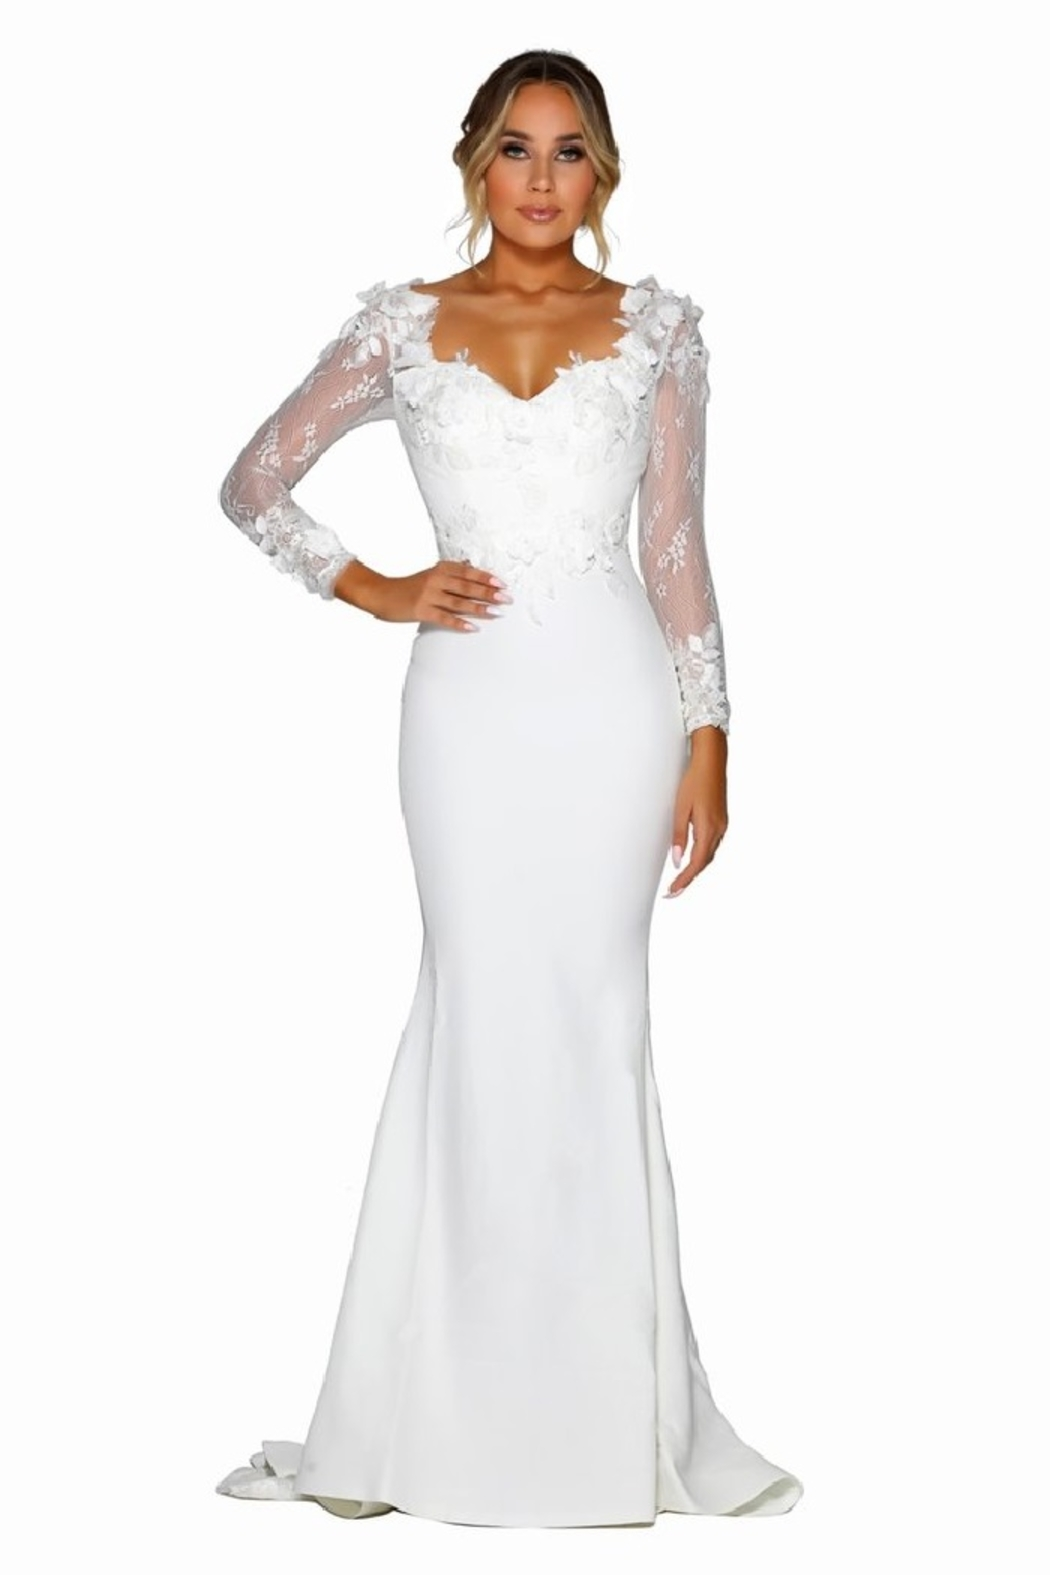 PORTIA AND SCARLETT White 3D Lace Fit & Flare Bridal Gown - Main Image